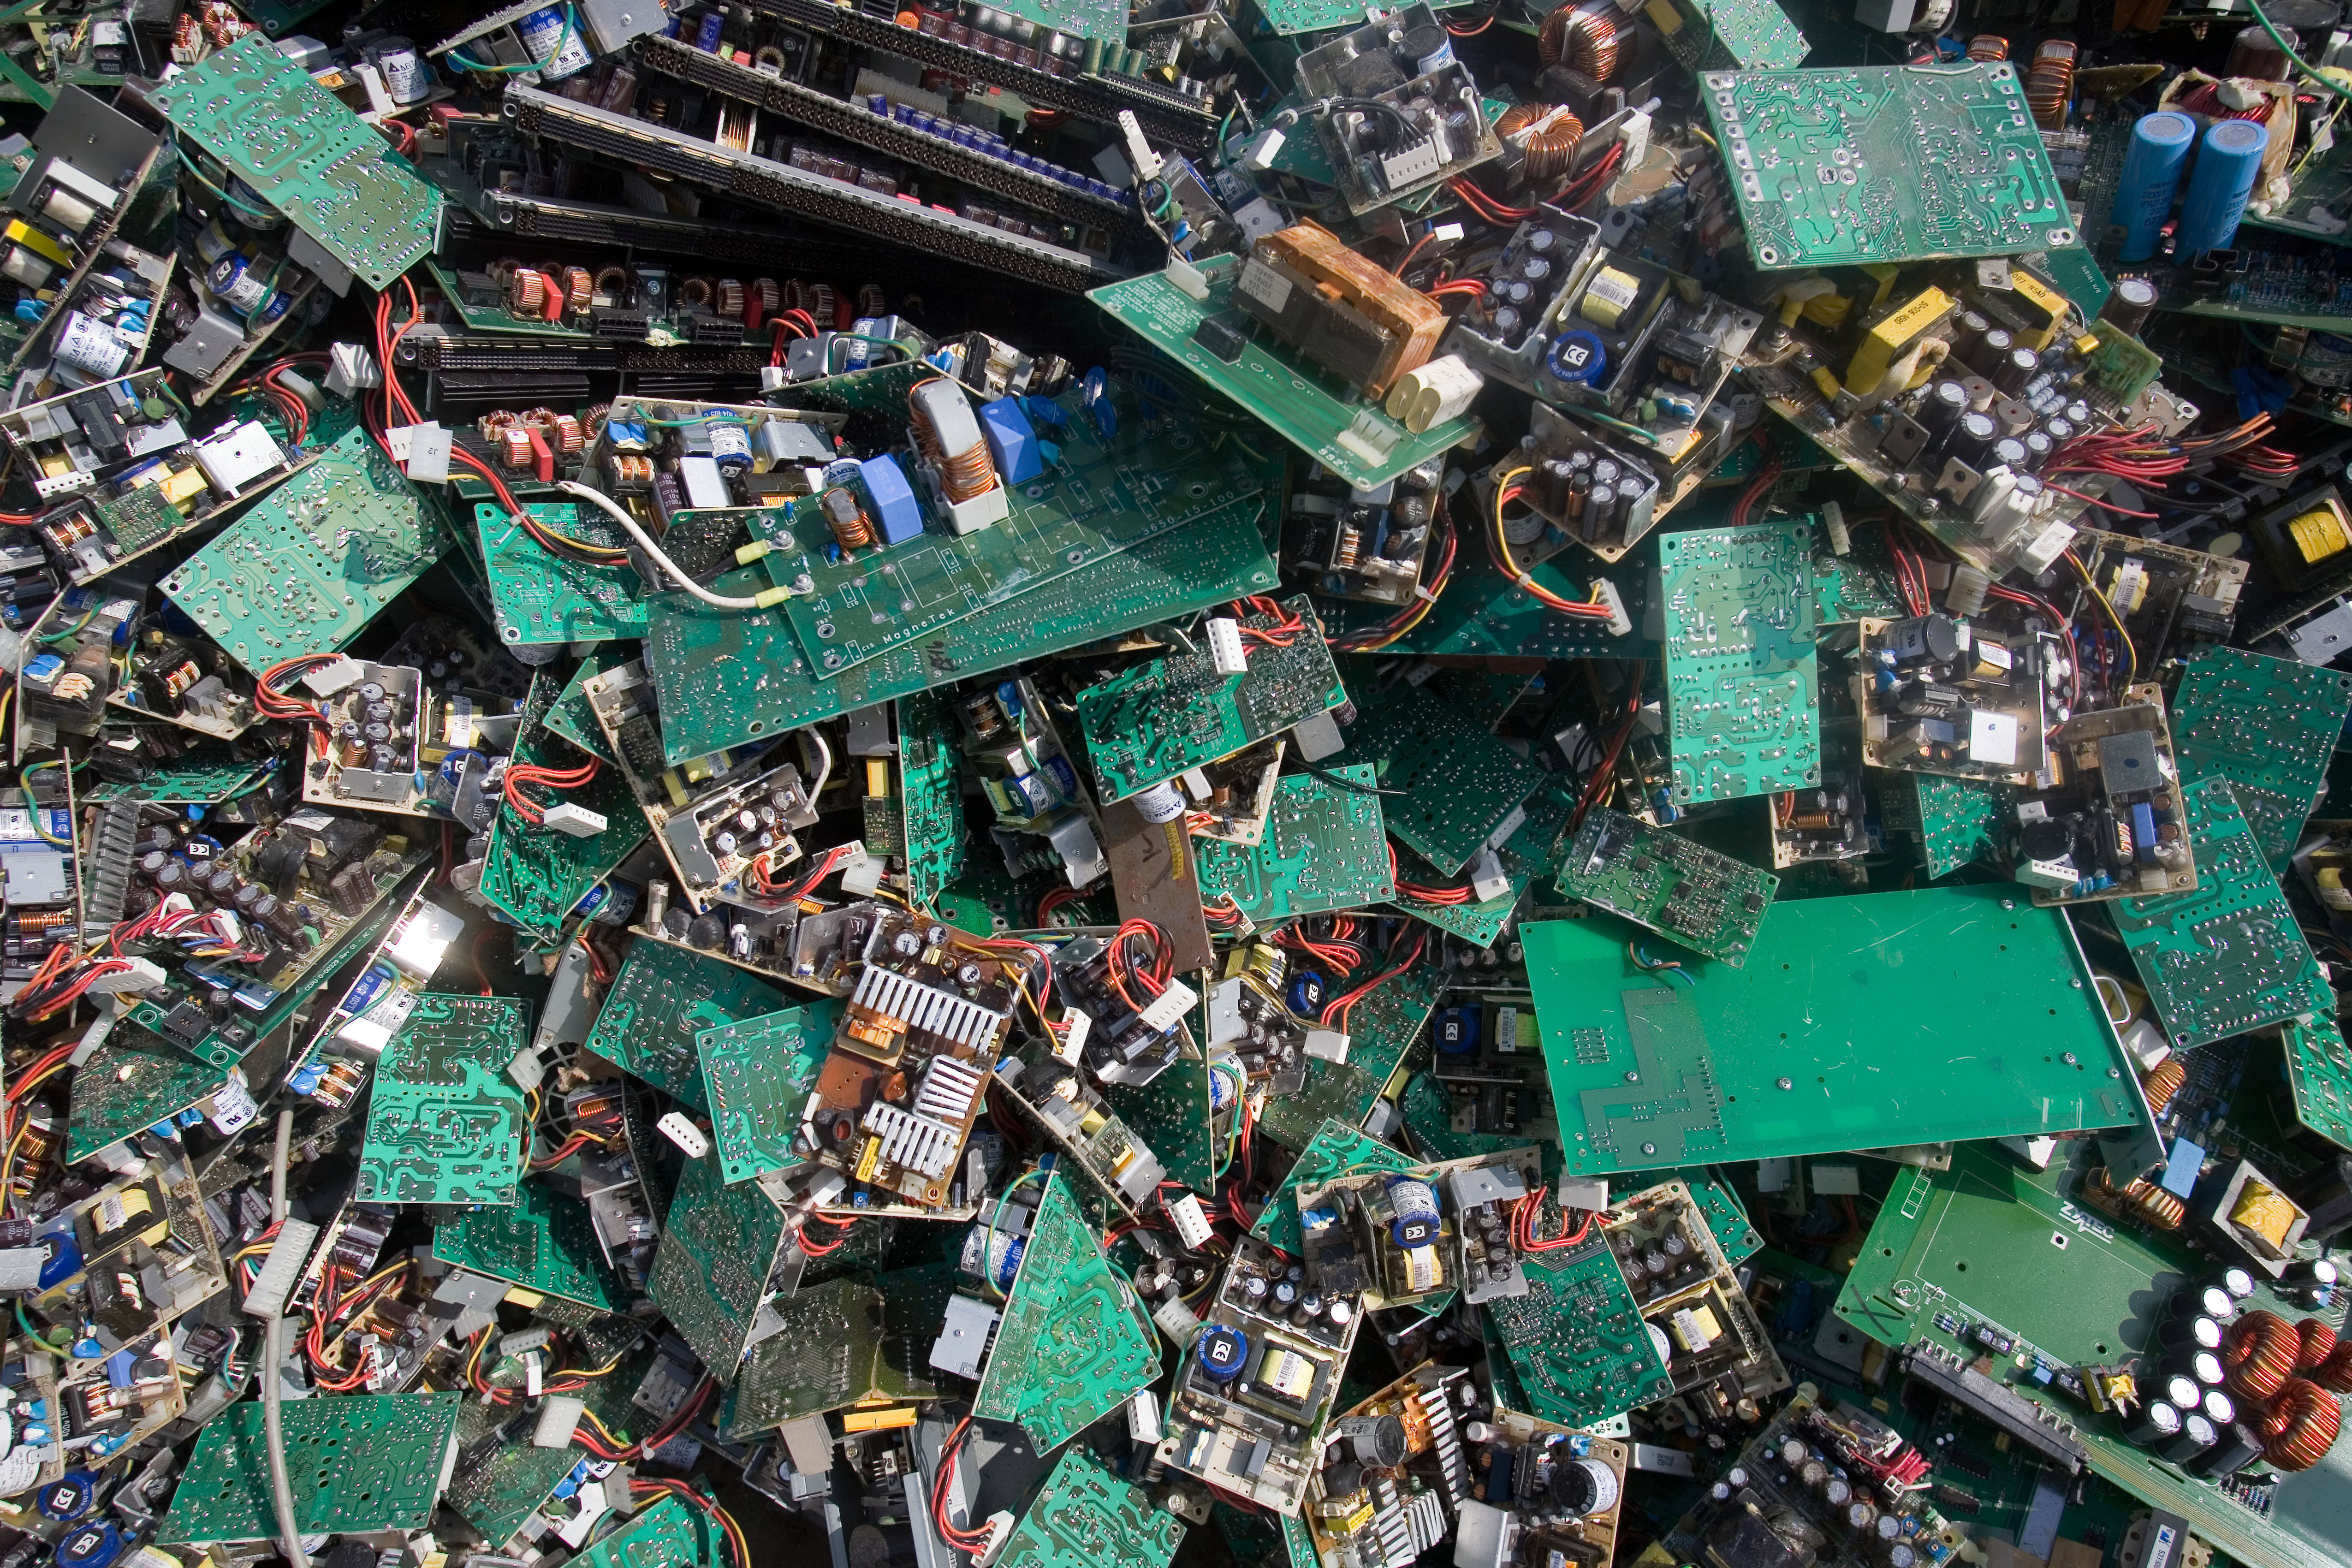 A pile of electronic trash awaits processing in Guiyu.